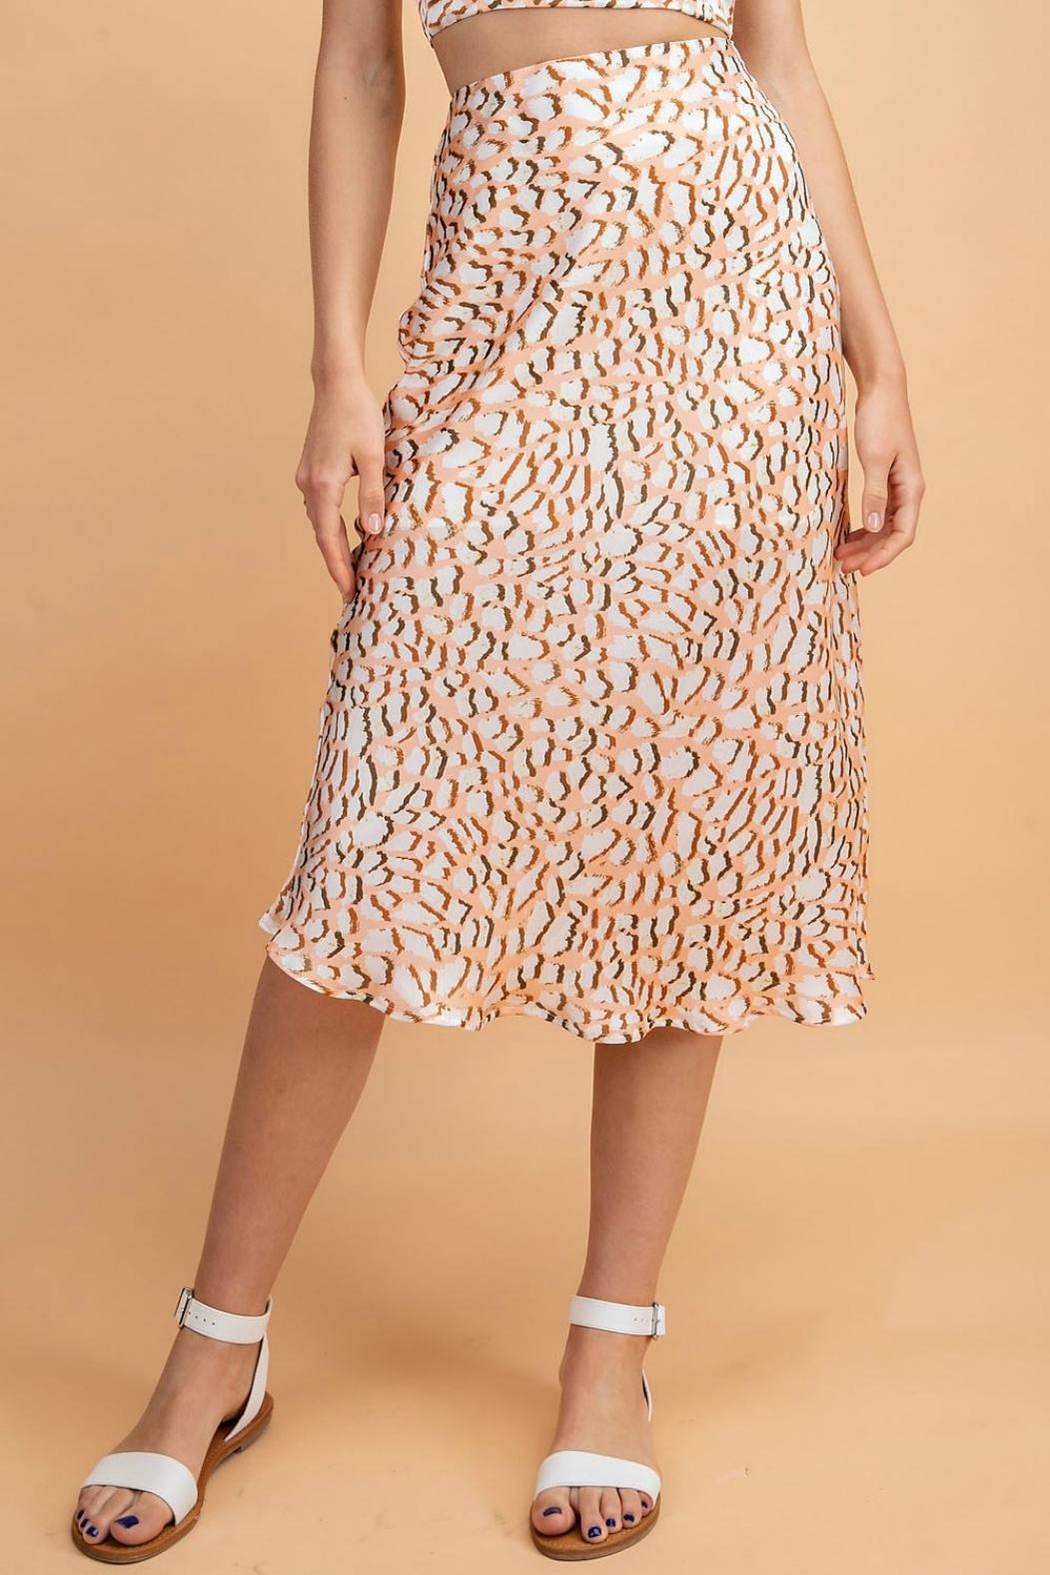 Pretty Little Things Peachy Leopard Skirt - Main Image